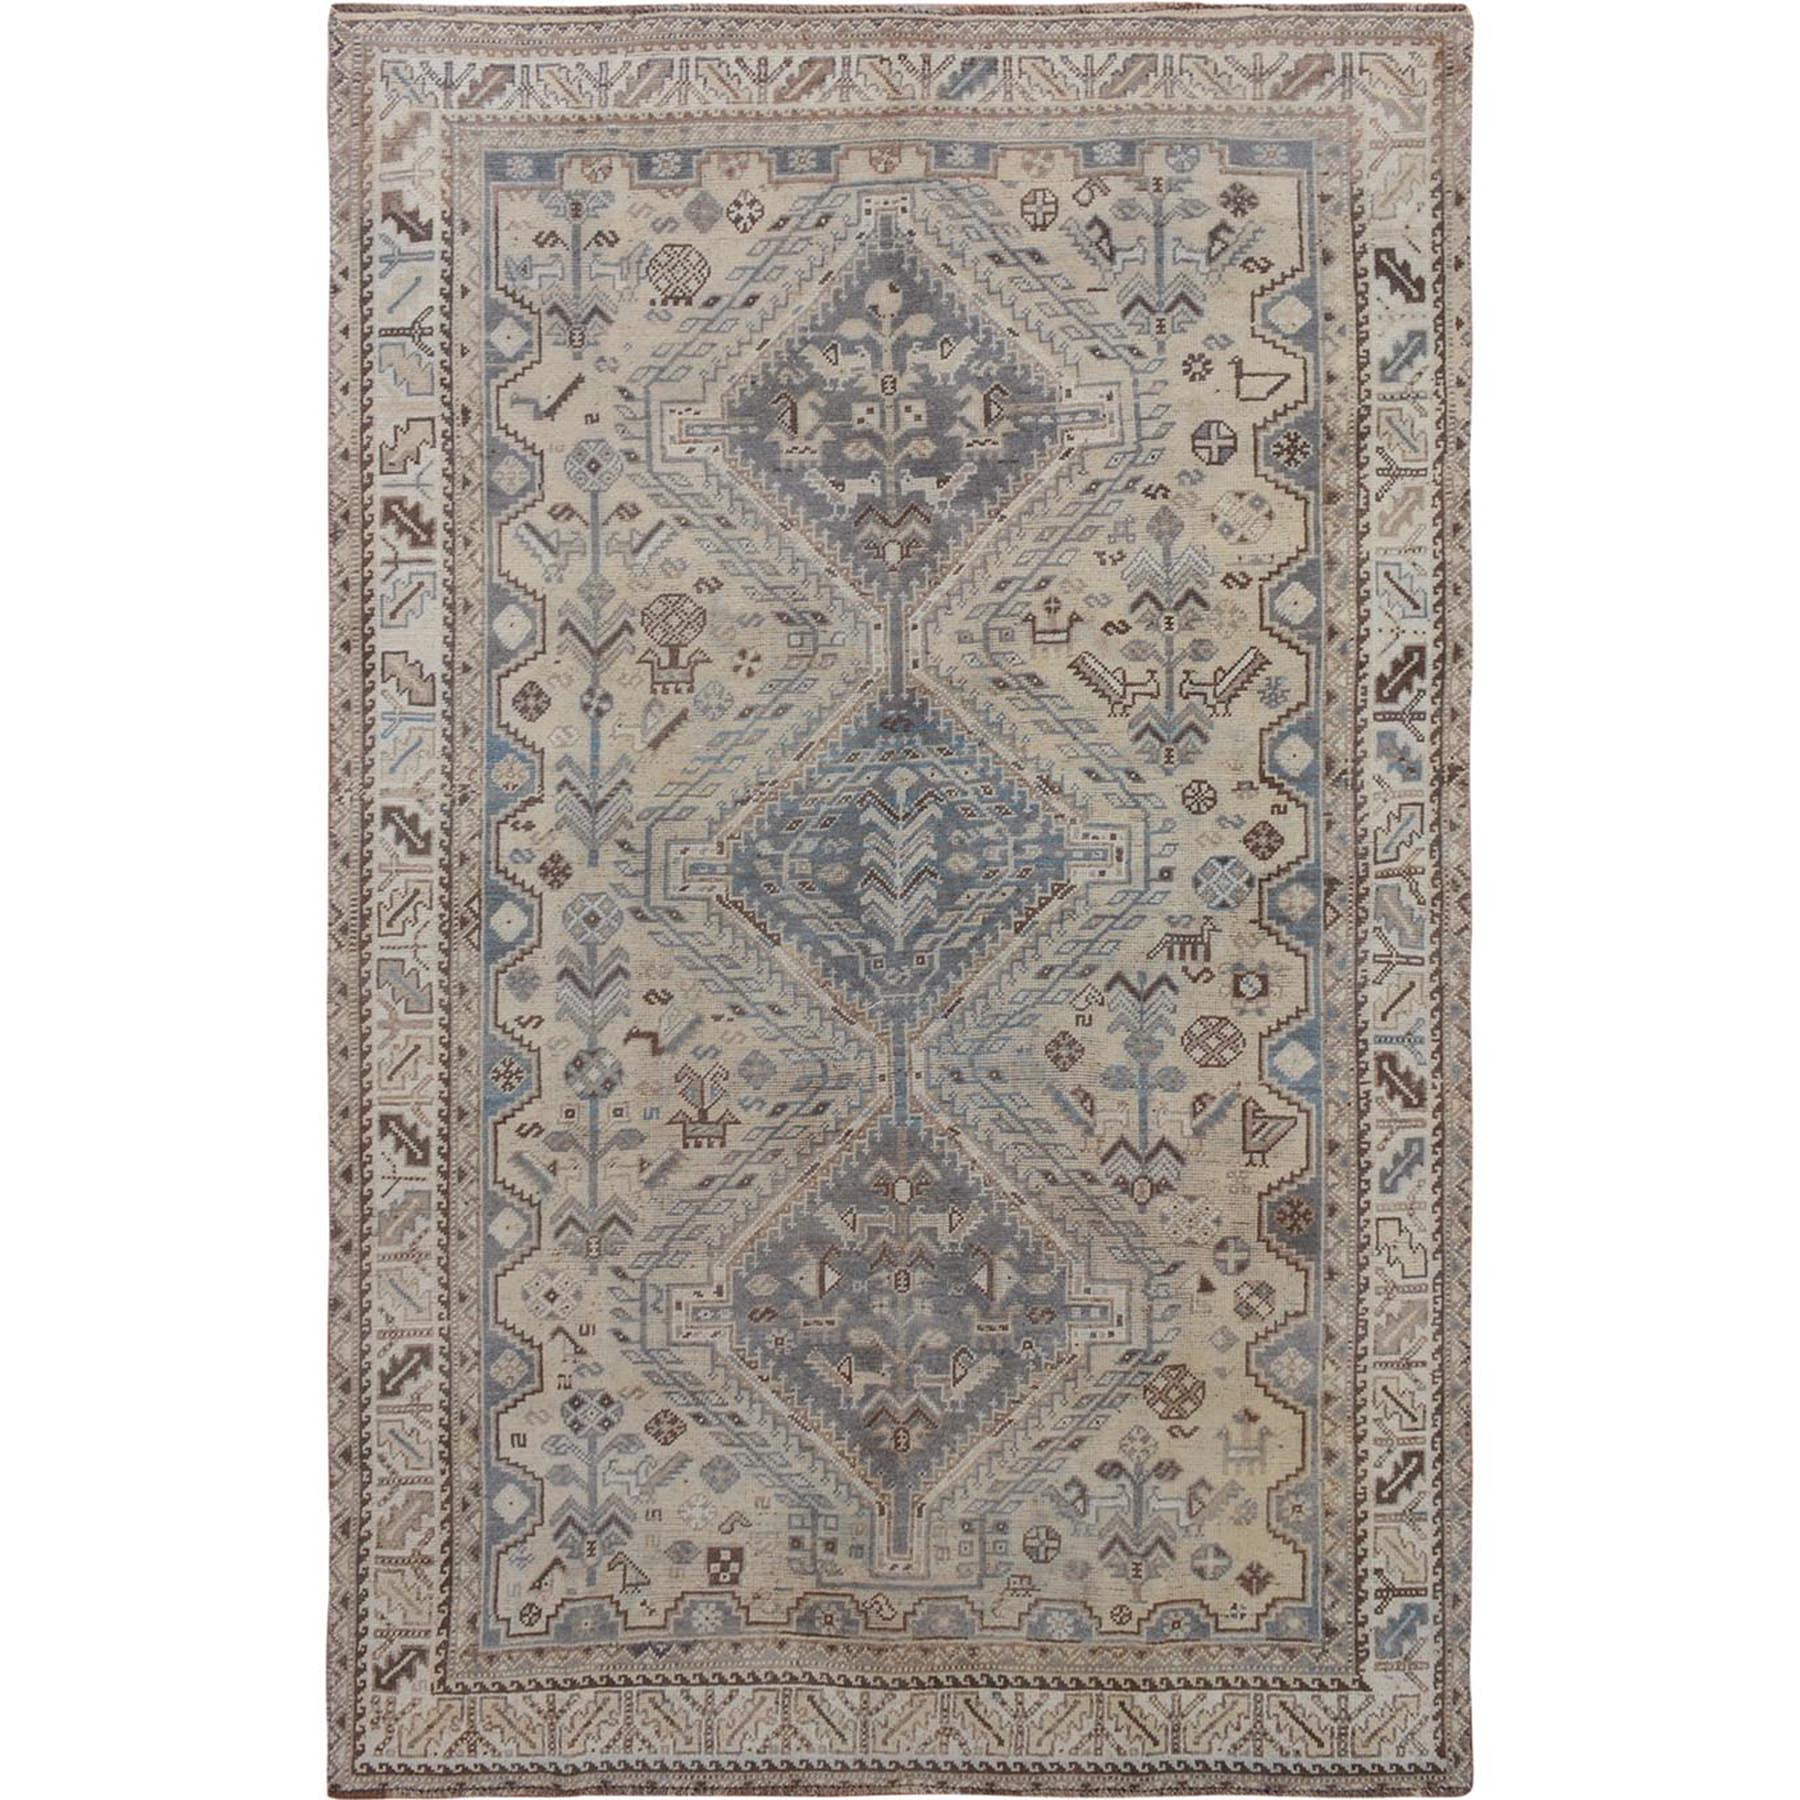 "5'5""x8'9"" Natural Colors Vintage and Worn Down Persian Shiraz Clean Hand Woven Pure Wool Oriental Rug"